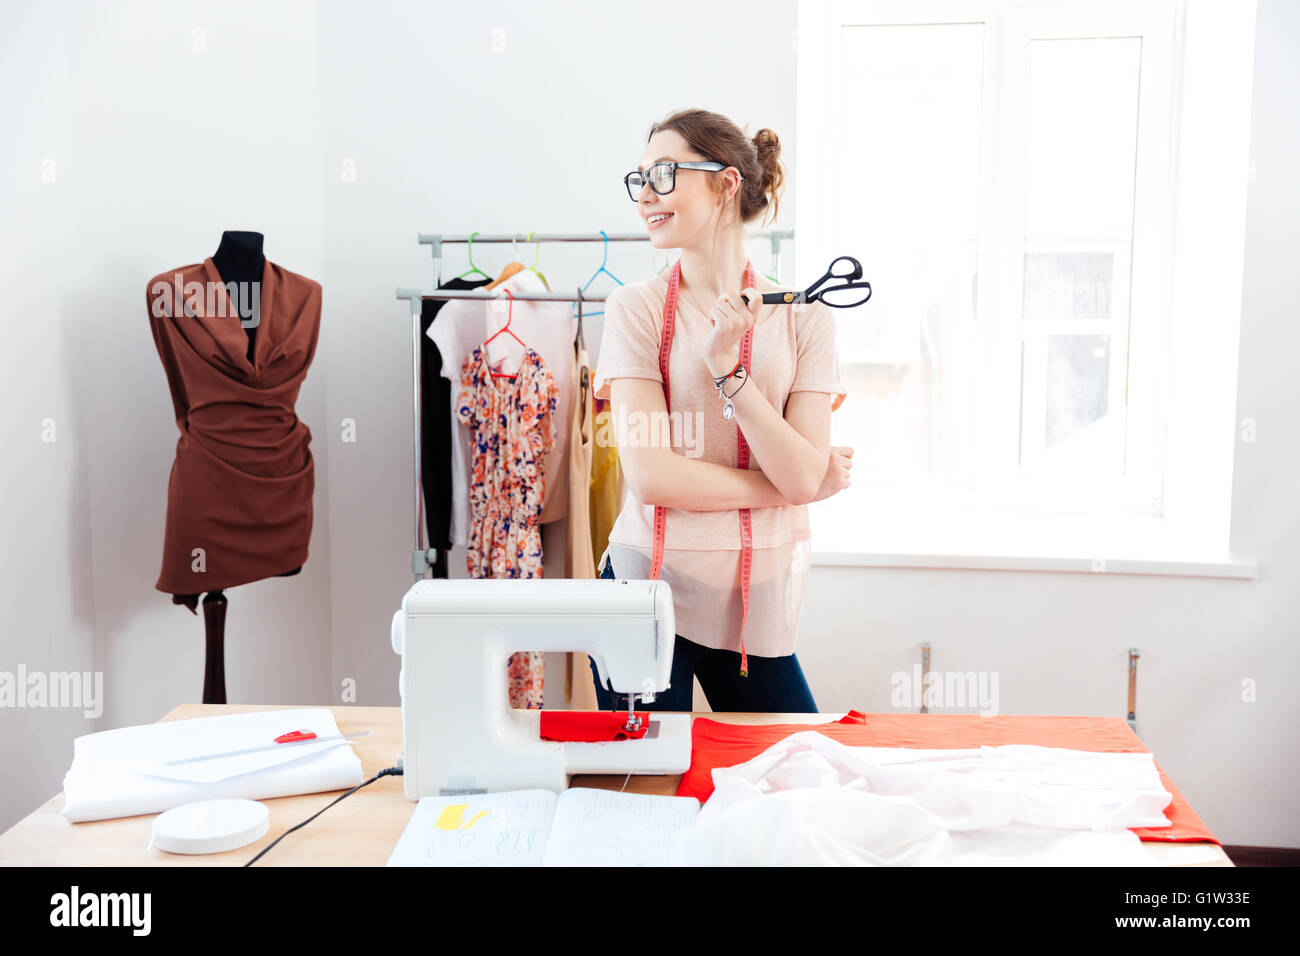 Cheerful attractive young woman seamstress with scissors standing and smilig in design studio - Stock Image